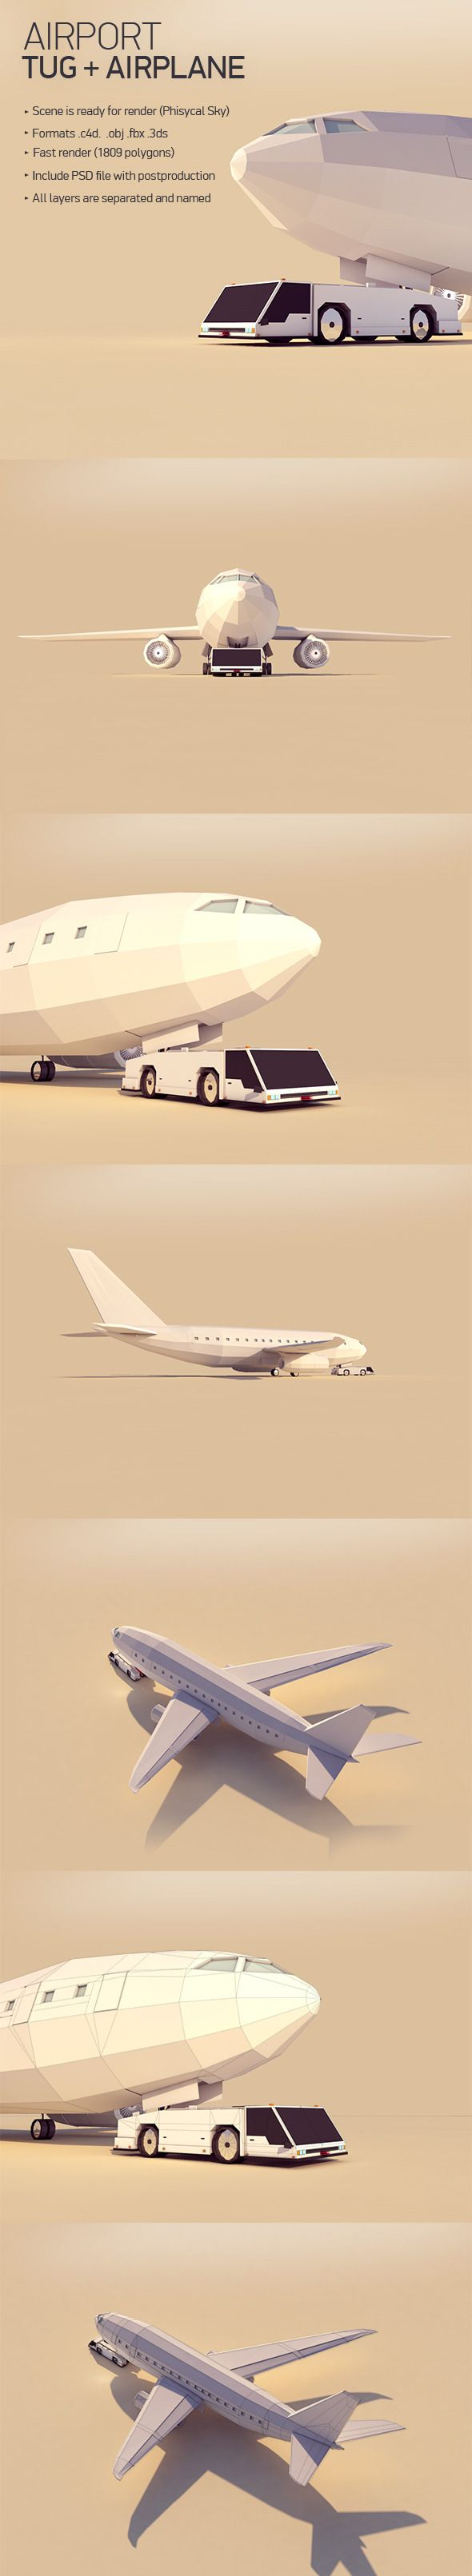 - Low poly Tug and Airplane- Created on Cinema 4d- Formats: .c4d, .fbx, .3ds, .obj- Rendered by Physical Sky- Include PSD file with postproduction- Fast render http://sternencluster.ovh/product/airport-tug-and-plane.html